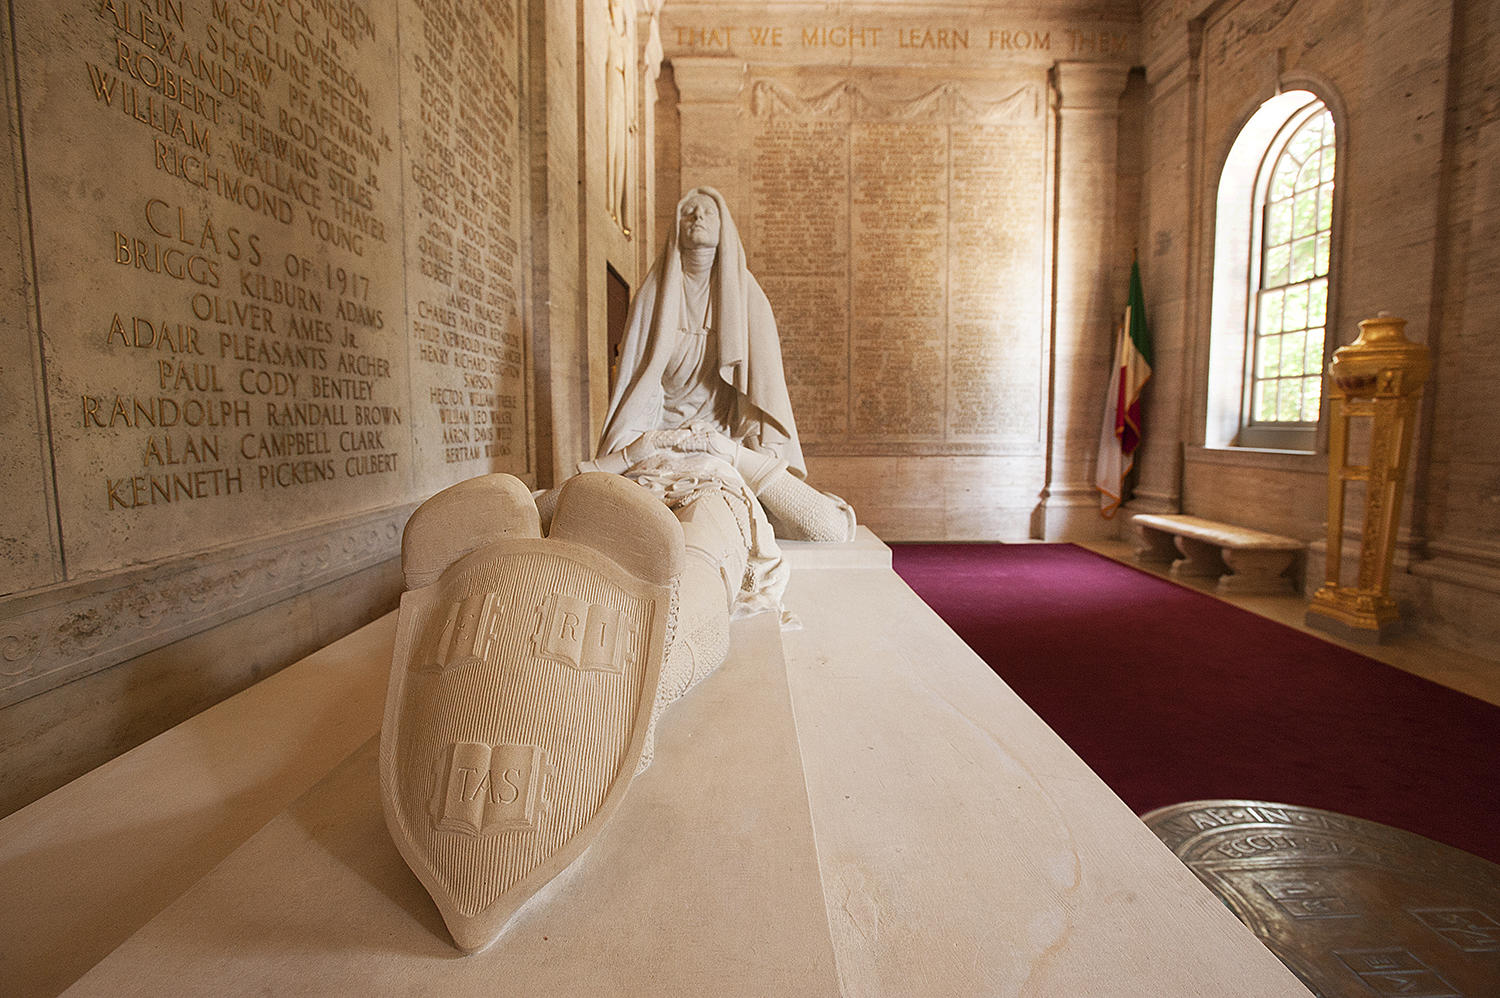 The Sacrifice in the Memorial Room